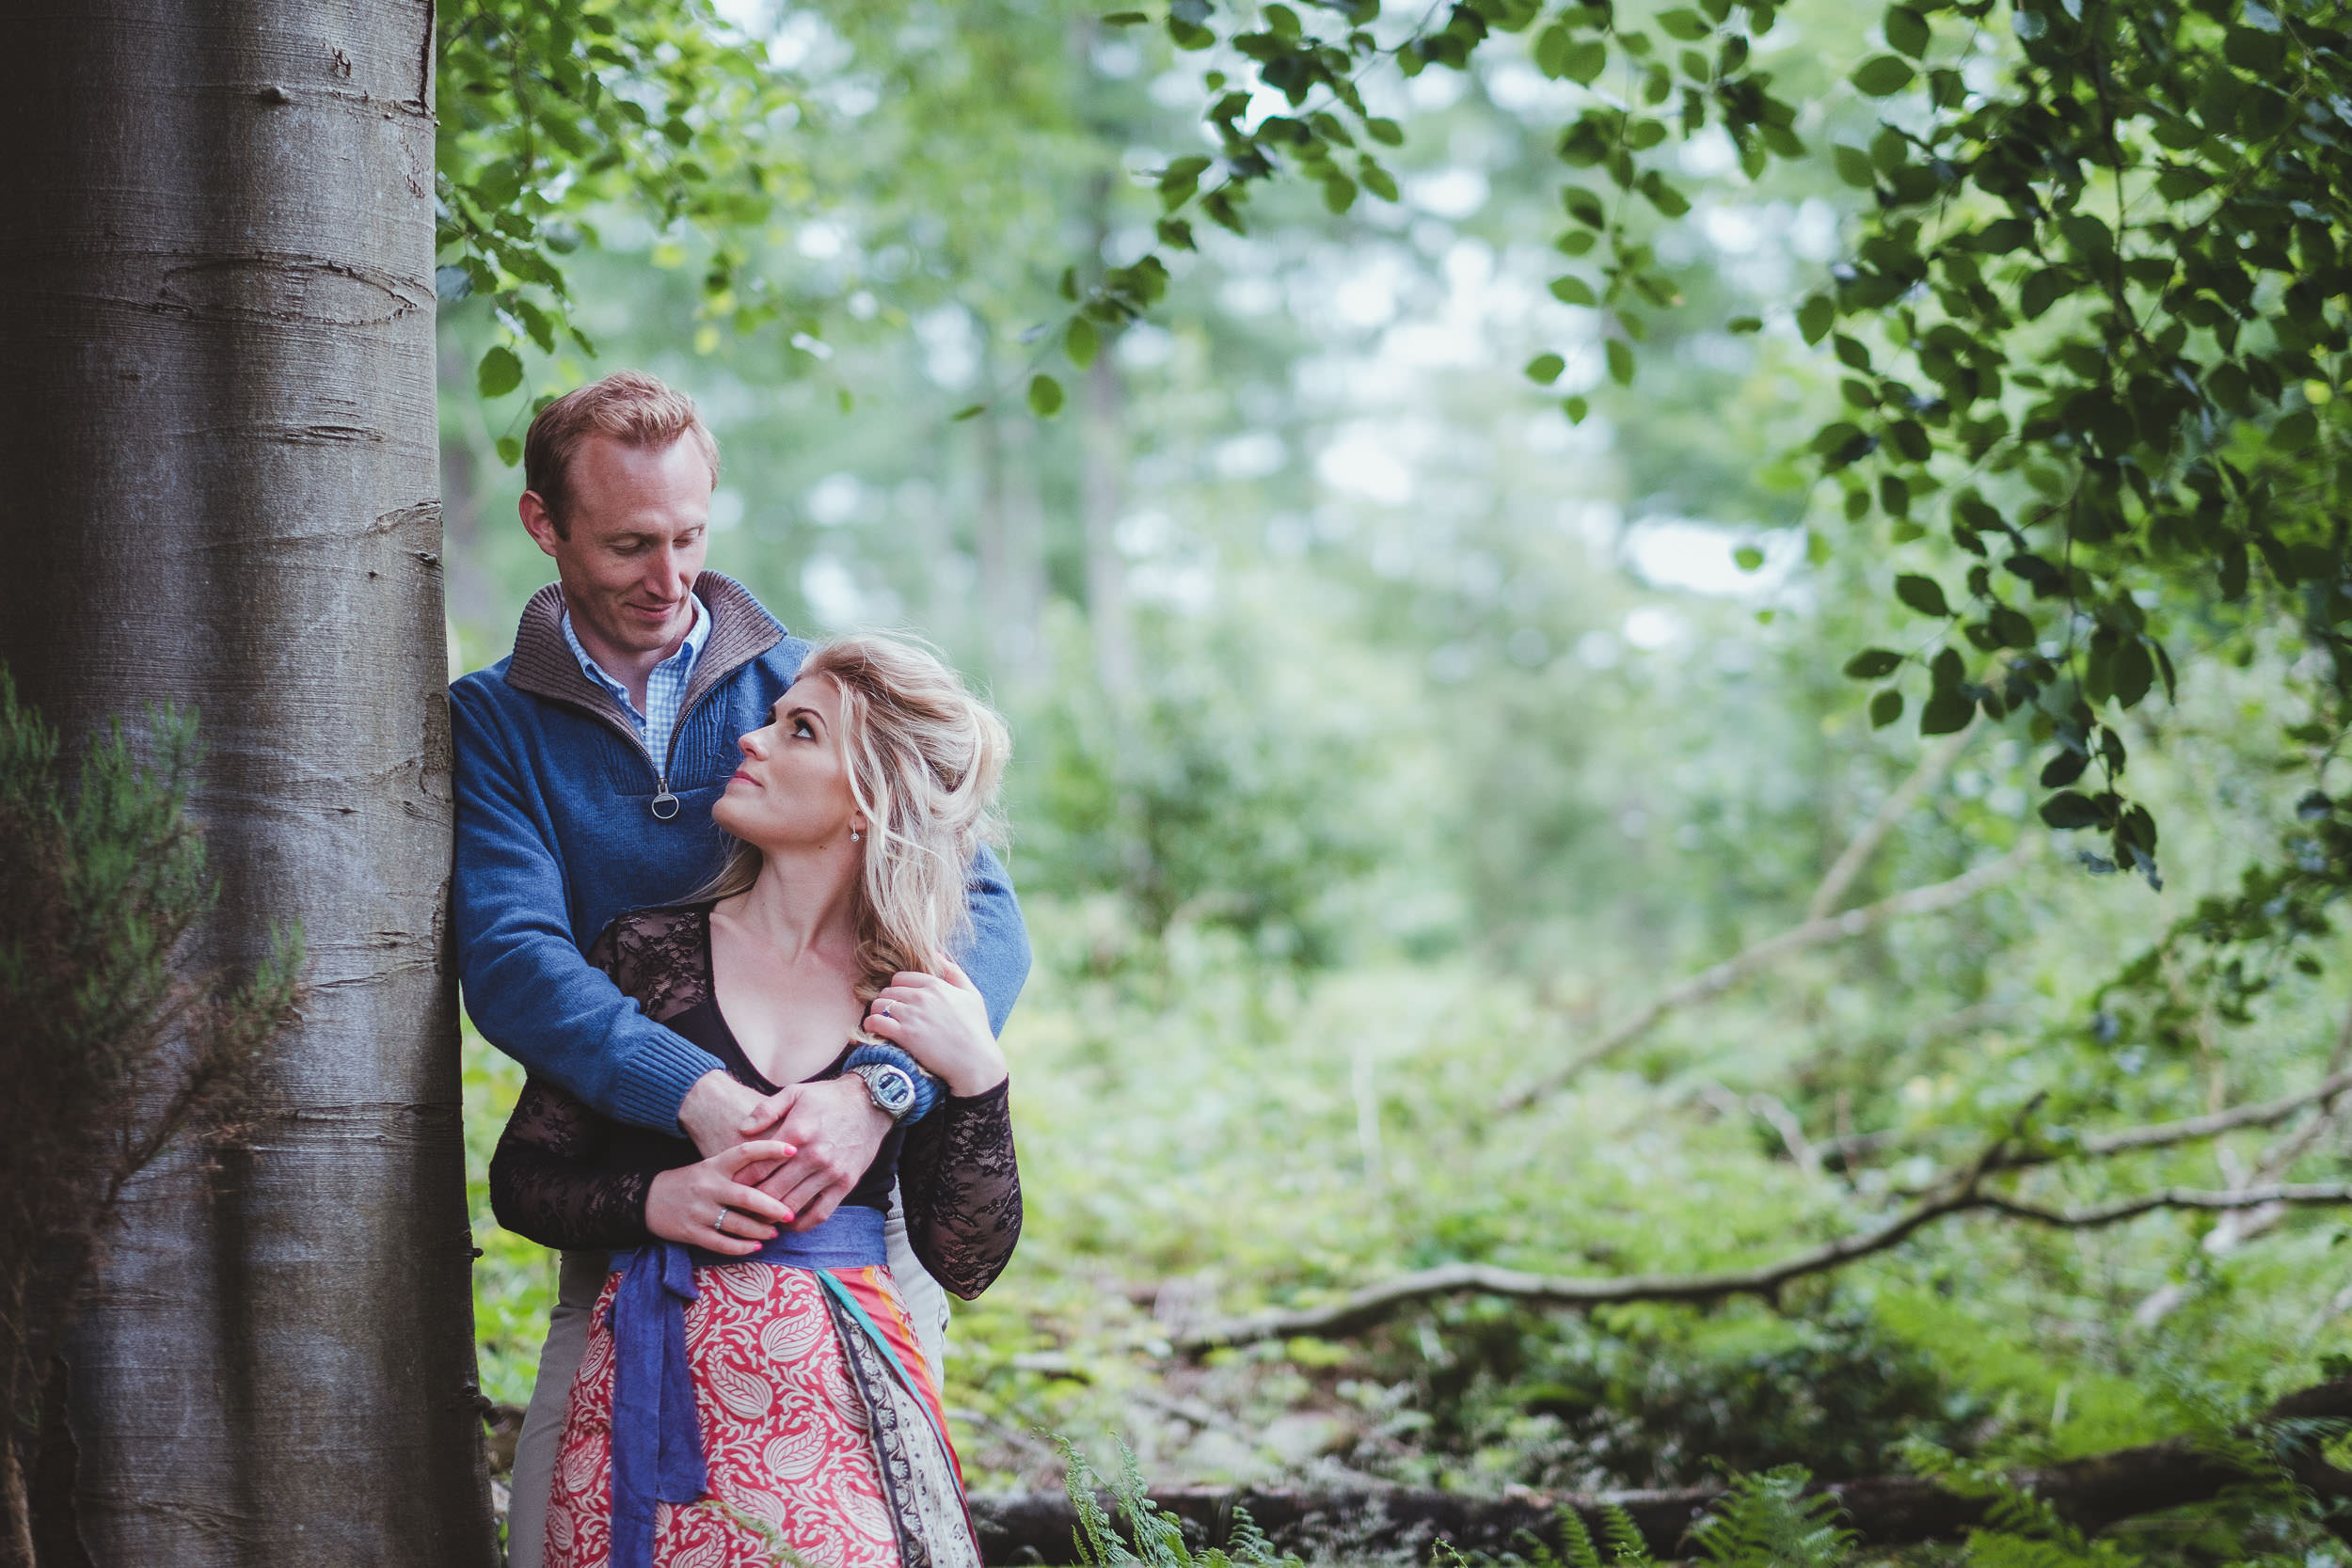 An engaged couple looking into each other's eyes while leaning against a tree